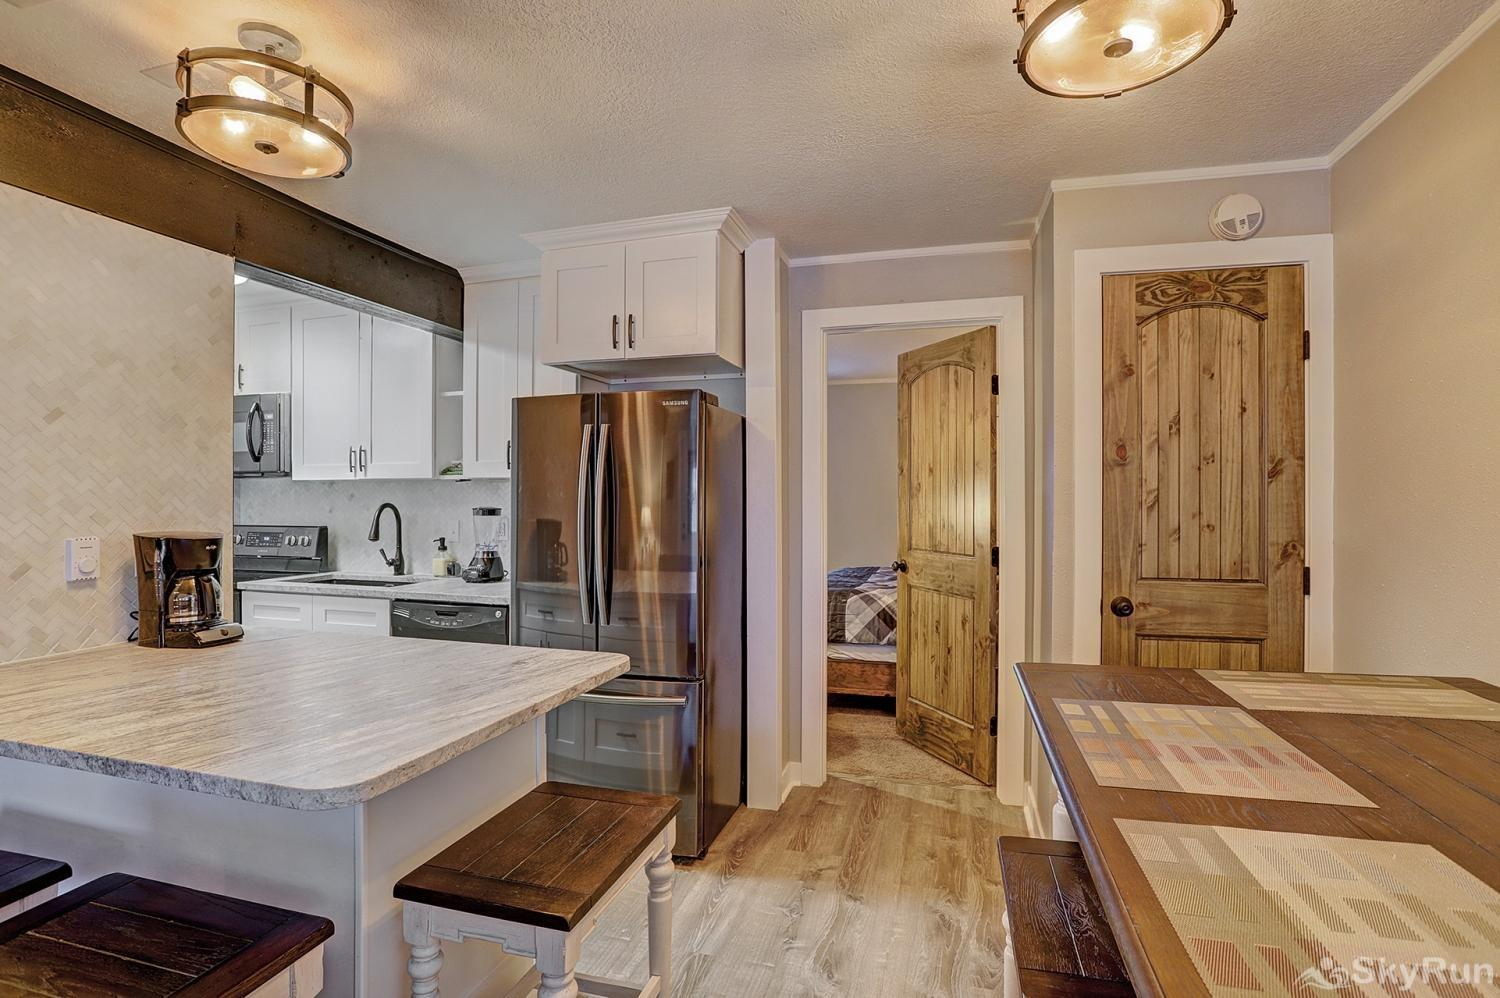 Knotty Pine Lodge Kitchen and dining area with counter top seating